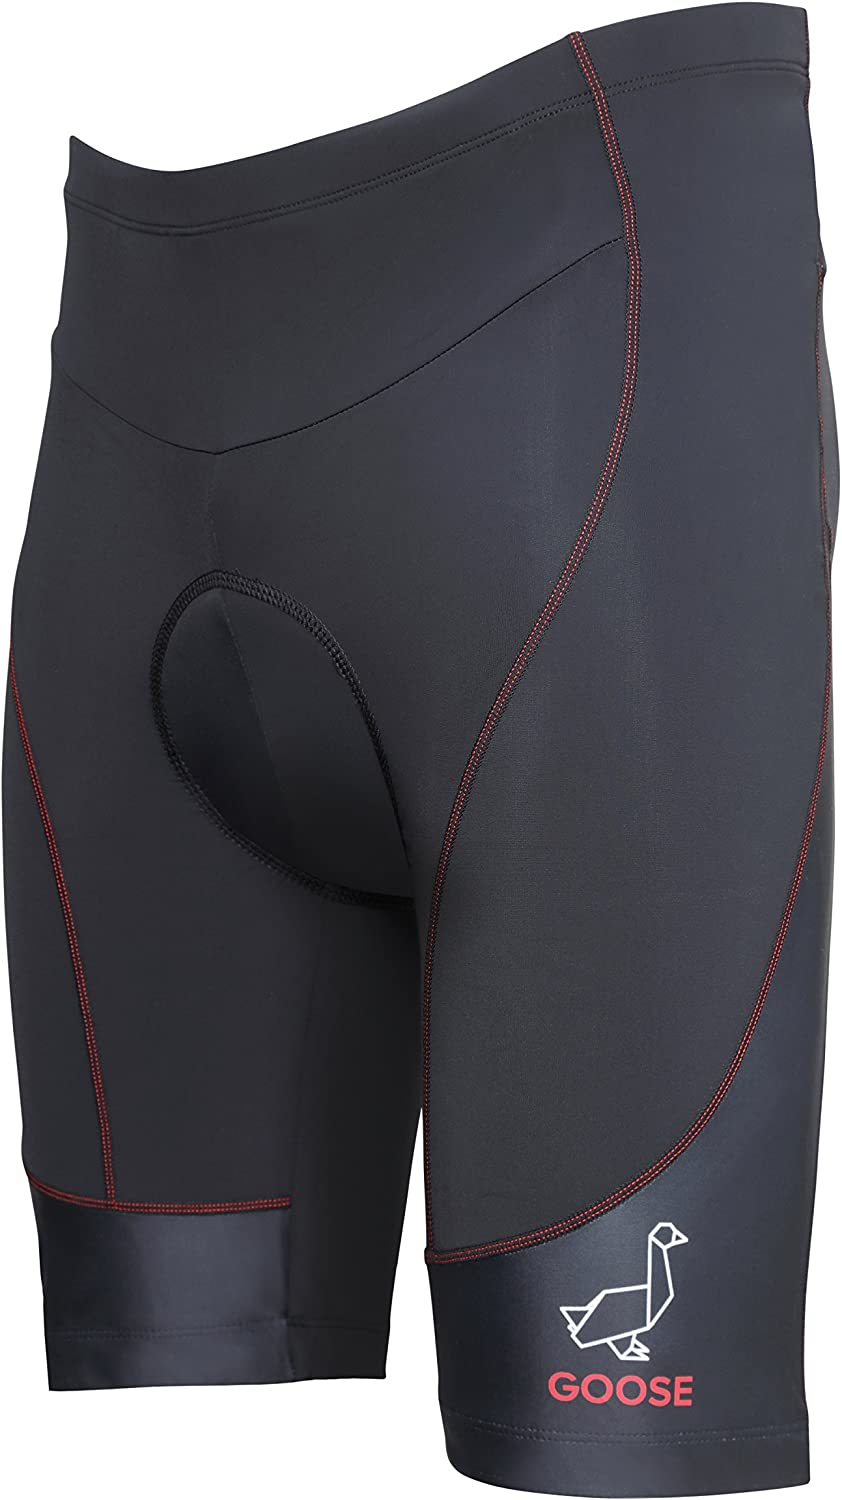 Goose Padded Cycling Shorts - The Very Best in Comfort and Protection! at  Men's Clothing store